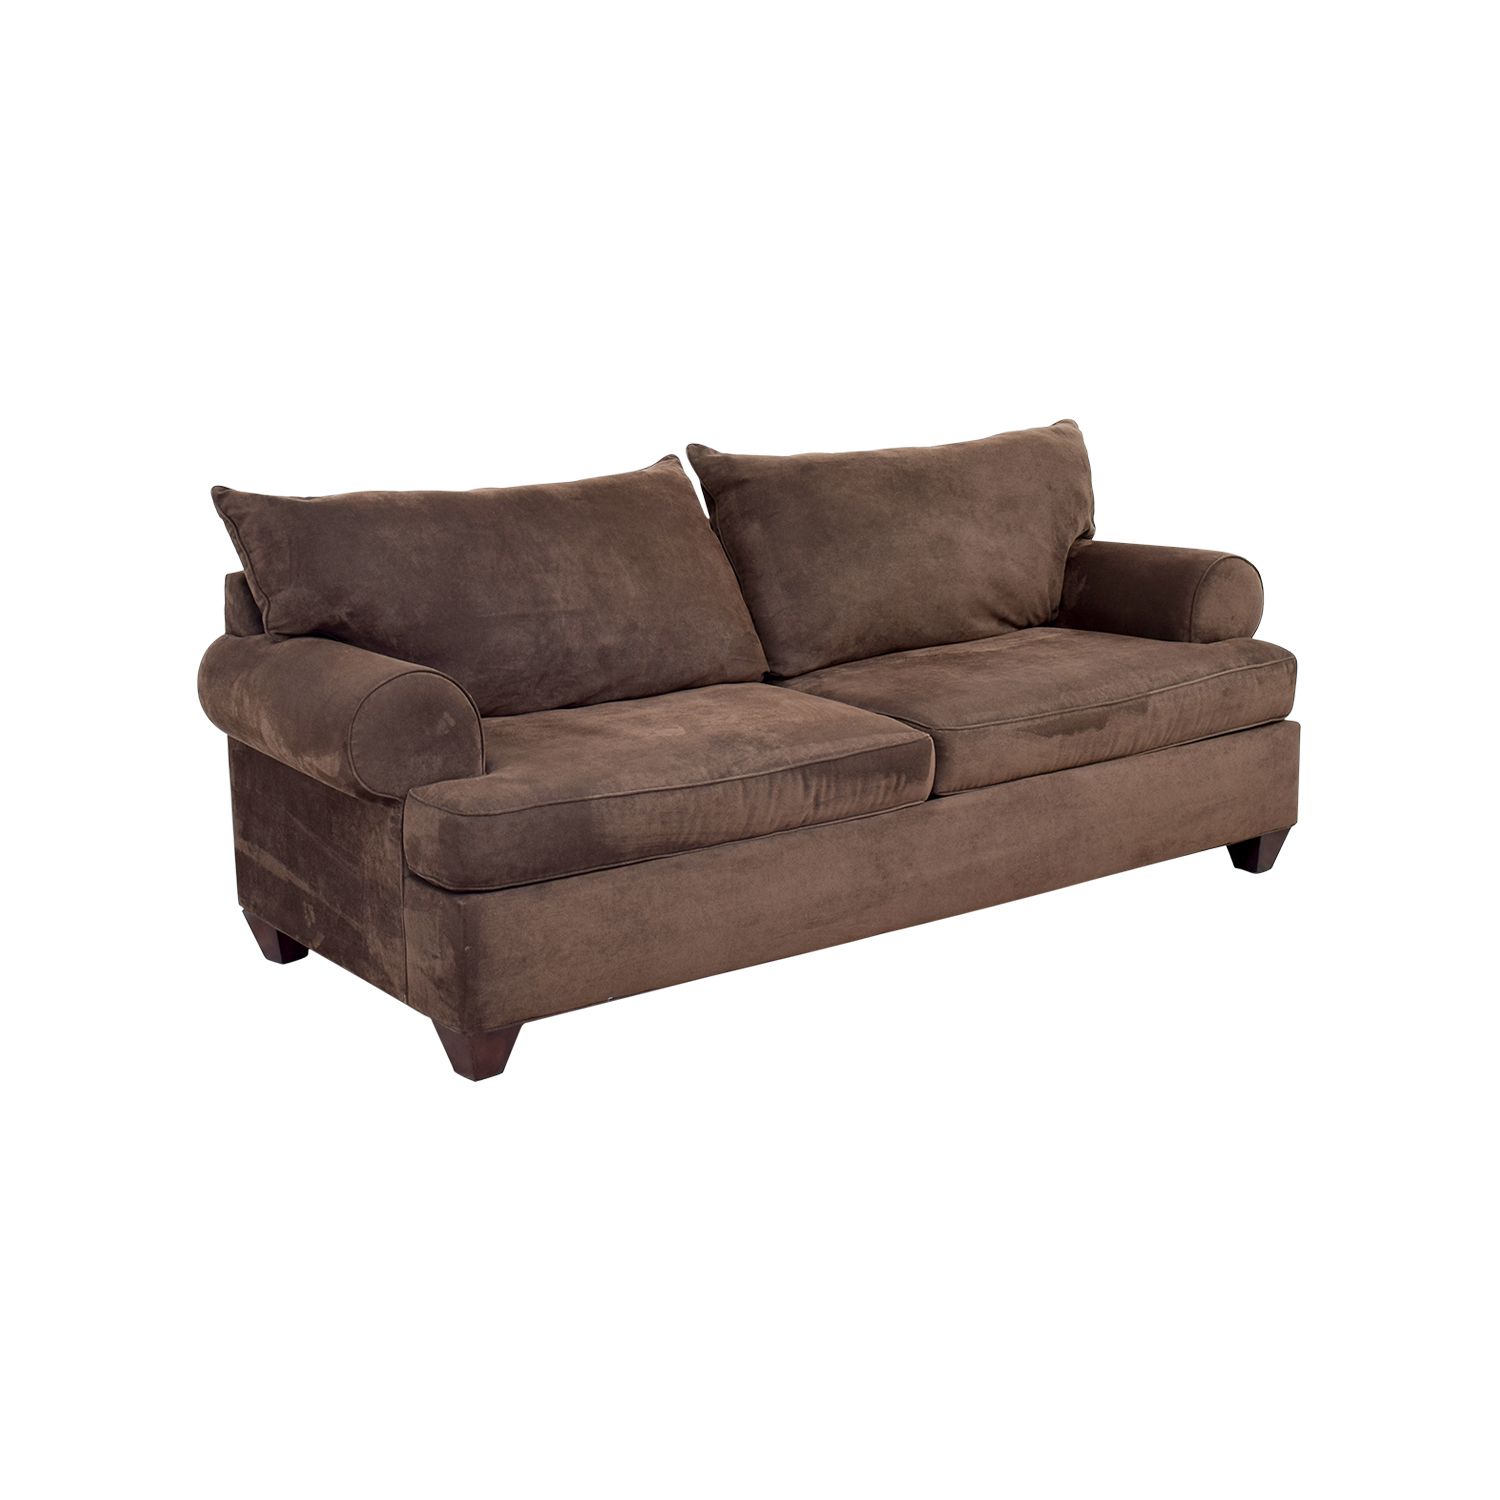 ... Brown Corduroy Two Cushion Couch Second Hand ...